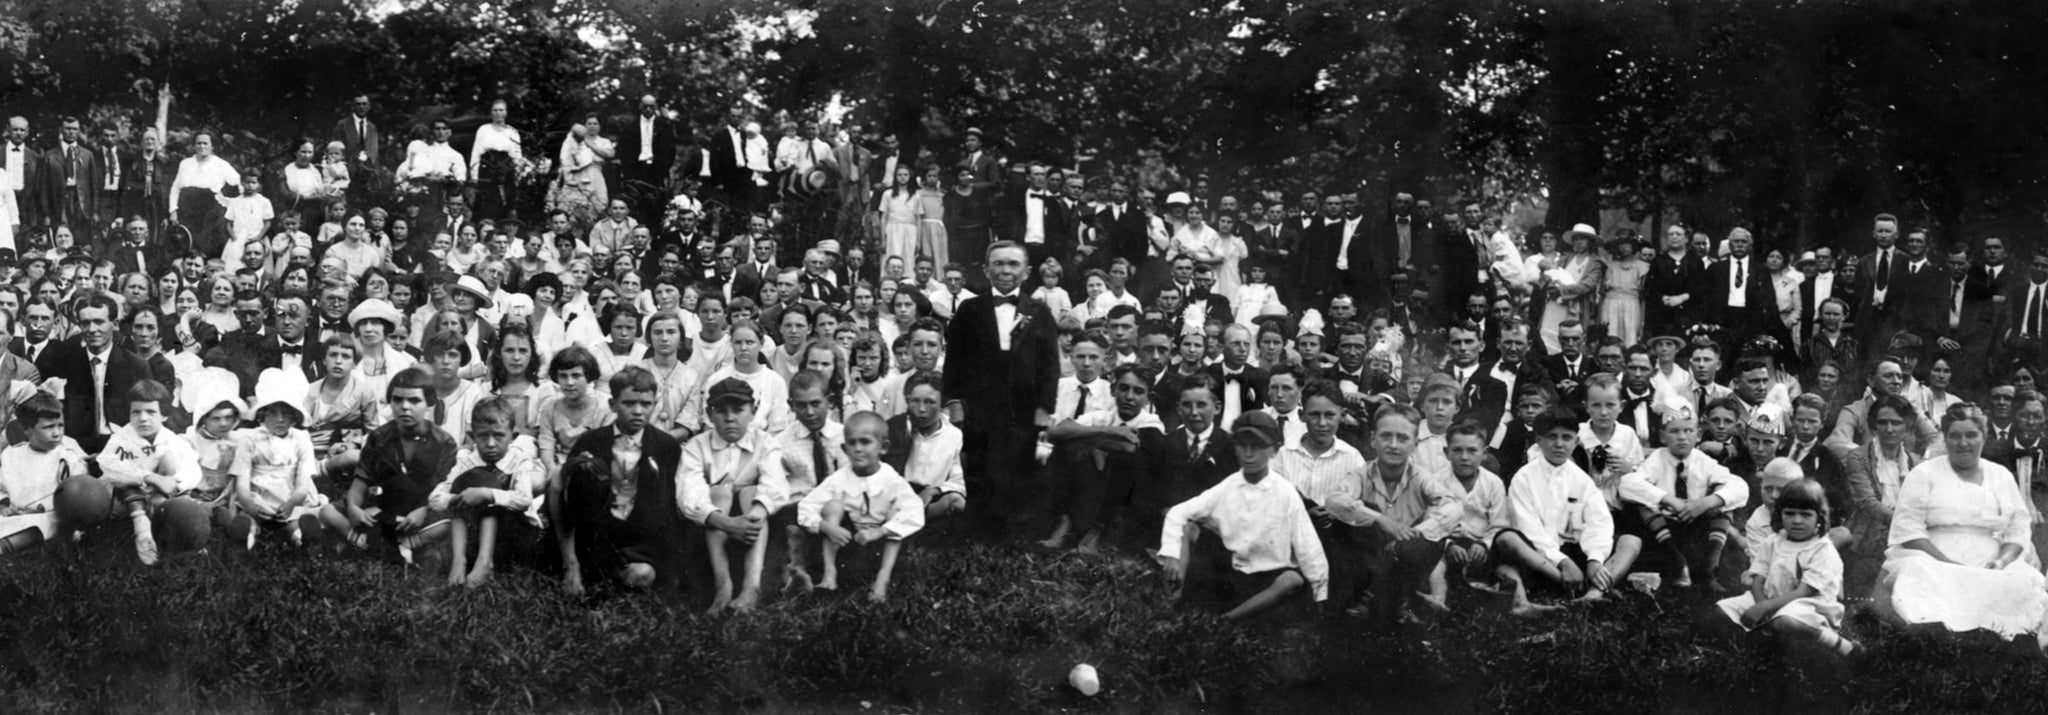 Gathering of the Kings Mountain Pythian Lodge No. 94 in 1921. The Guest of Honor (center) was the smallest Pythian, Major John Mertz, who stood 46 inches tall and weighed 62 pounds. -- Courtesy Kings Mountain Historical Museum